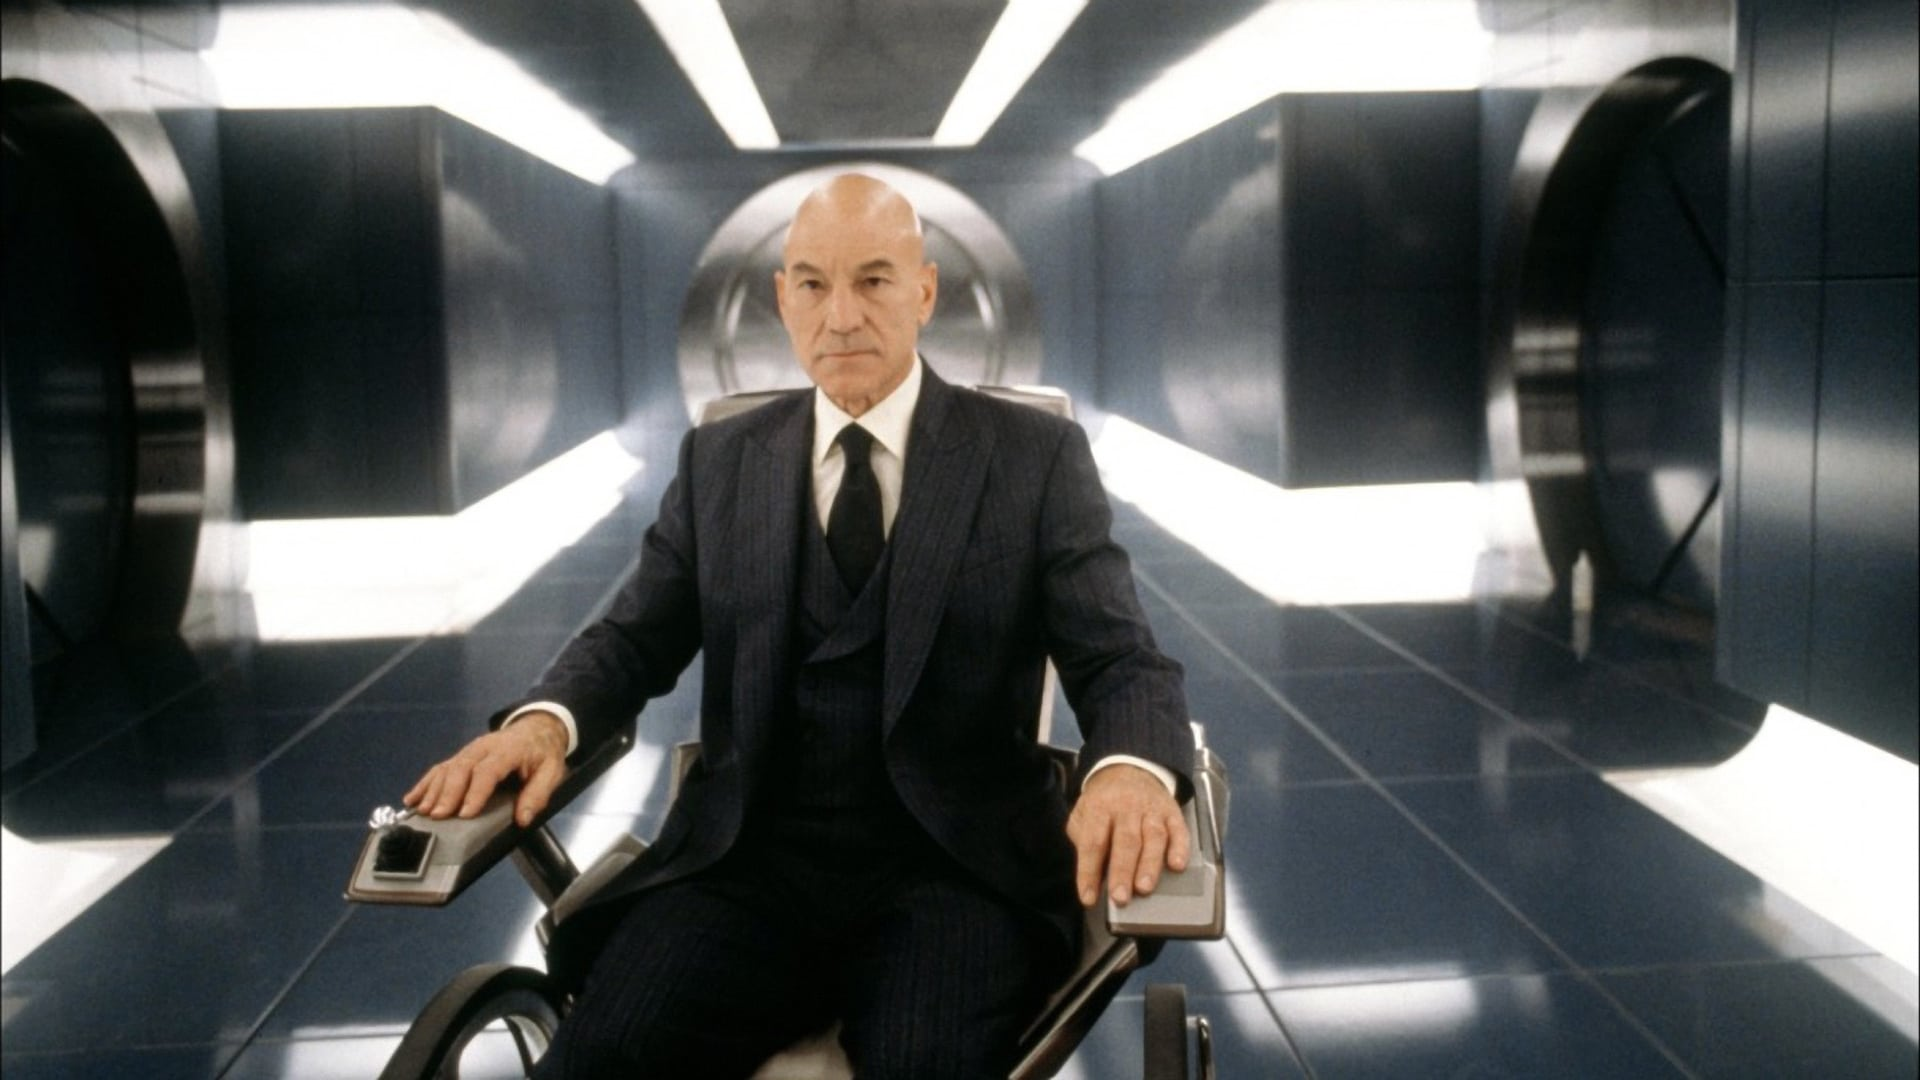 Patrick Stewart Charles Xavier X Men Marvel Disney movie franchise